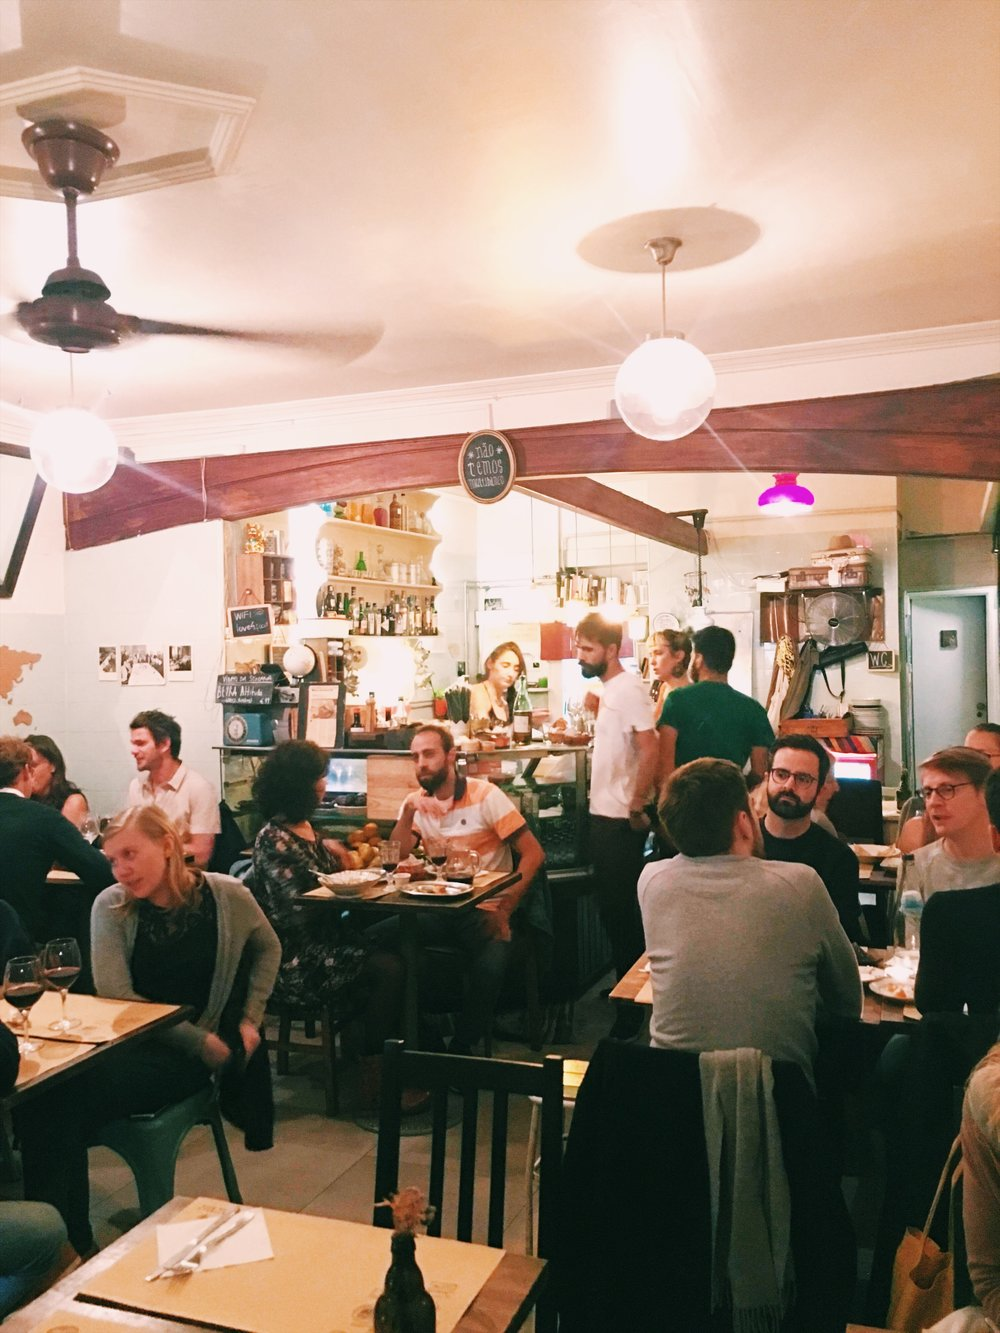 Estrella Da Bica / Lisbon eats + drinks travel guide | Soi 55 Travels